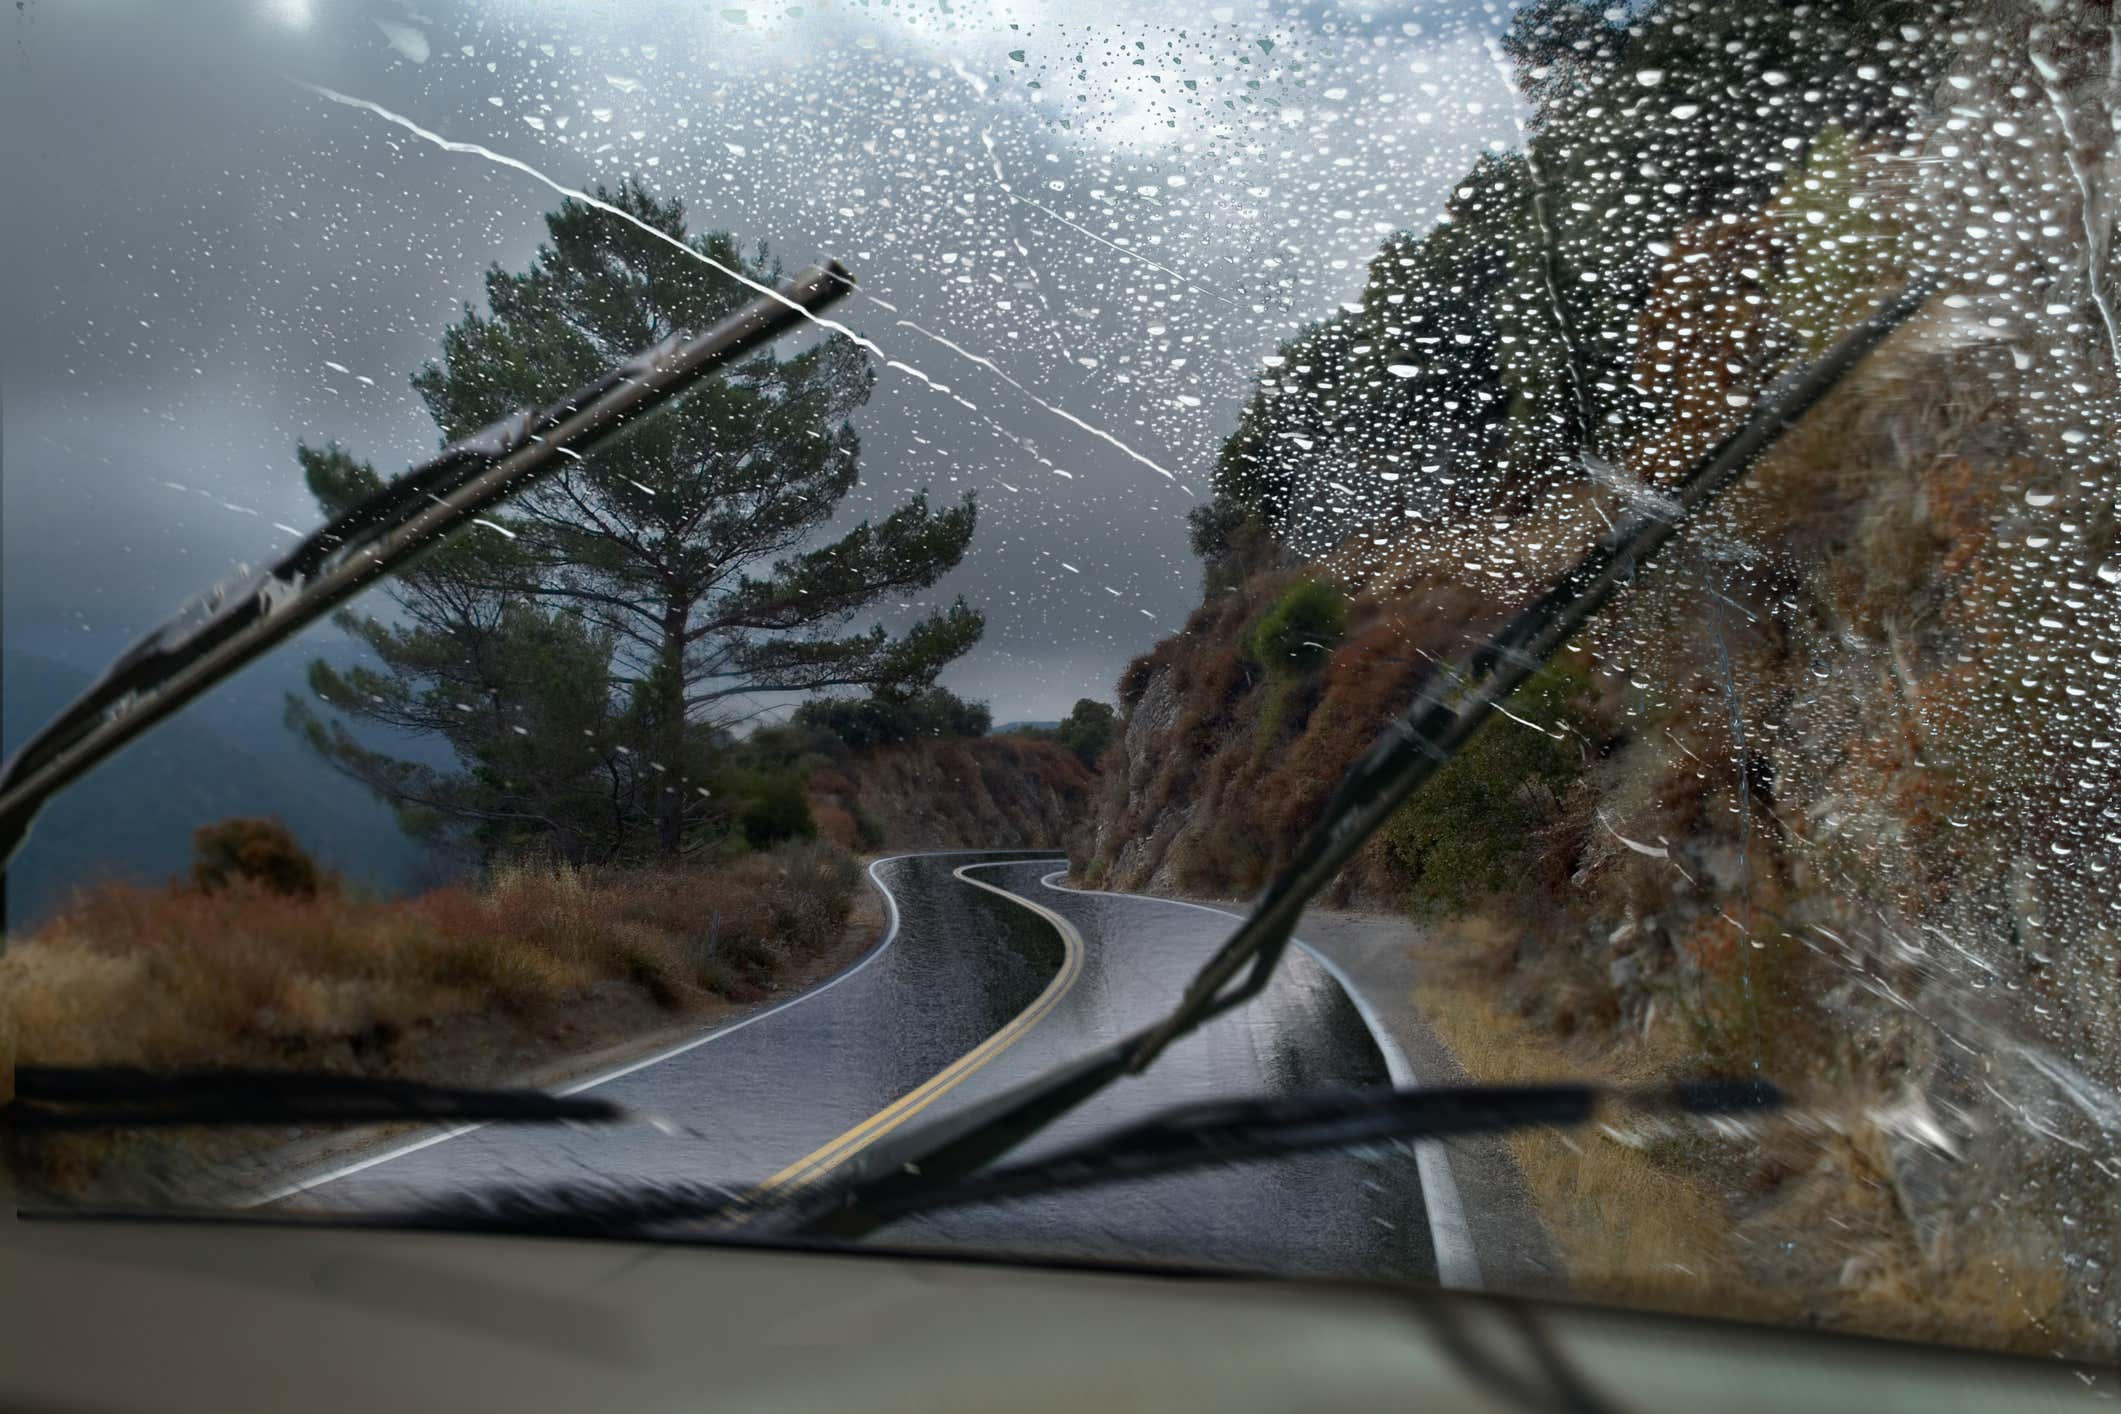 Windshield being cleaned by wiper blades during heavy rain and wind